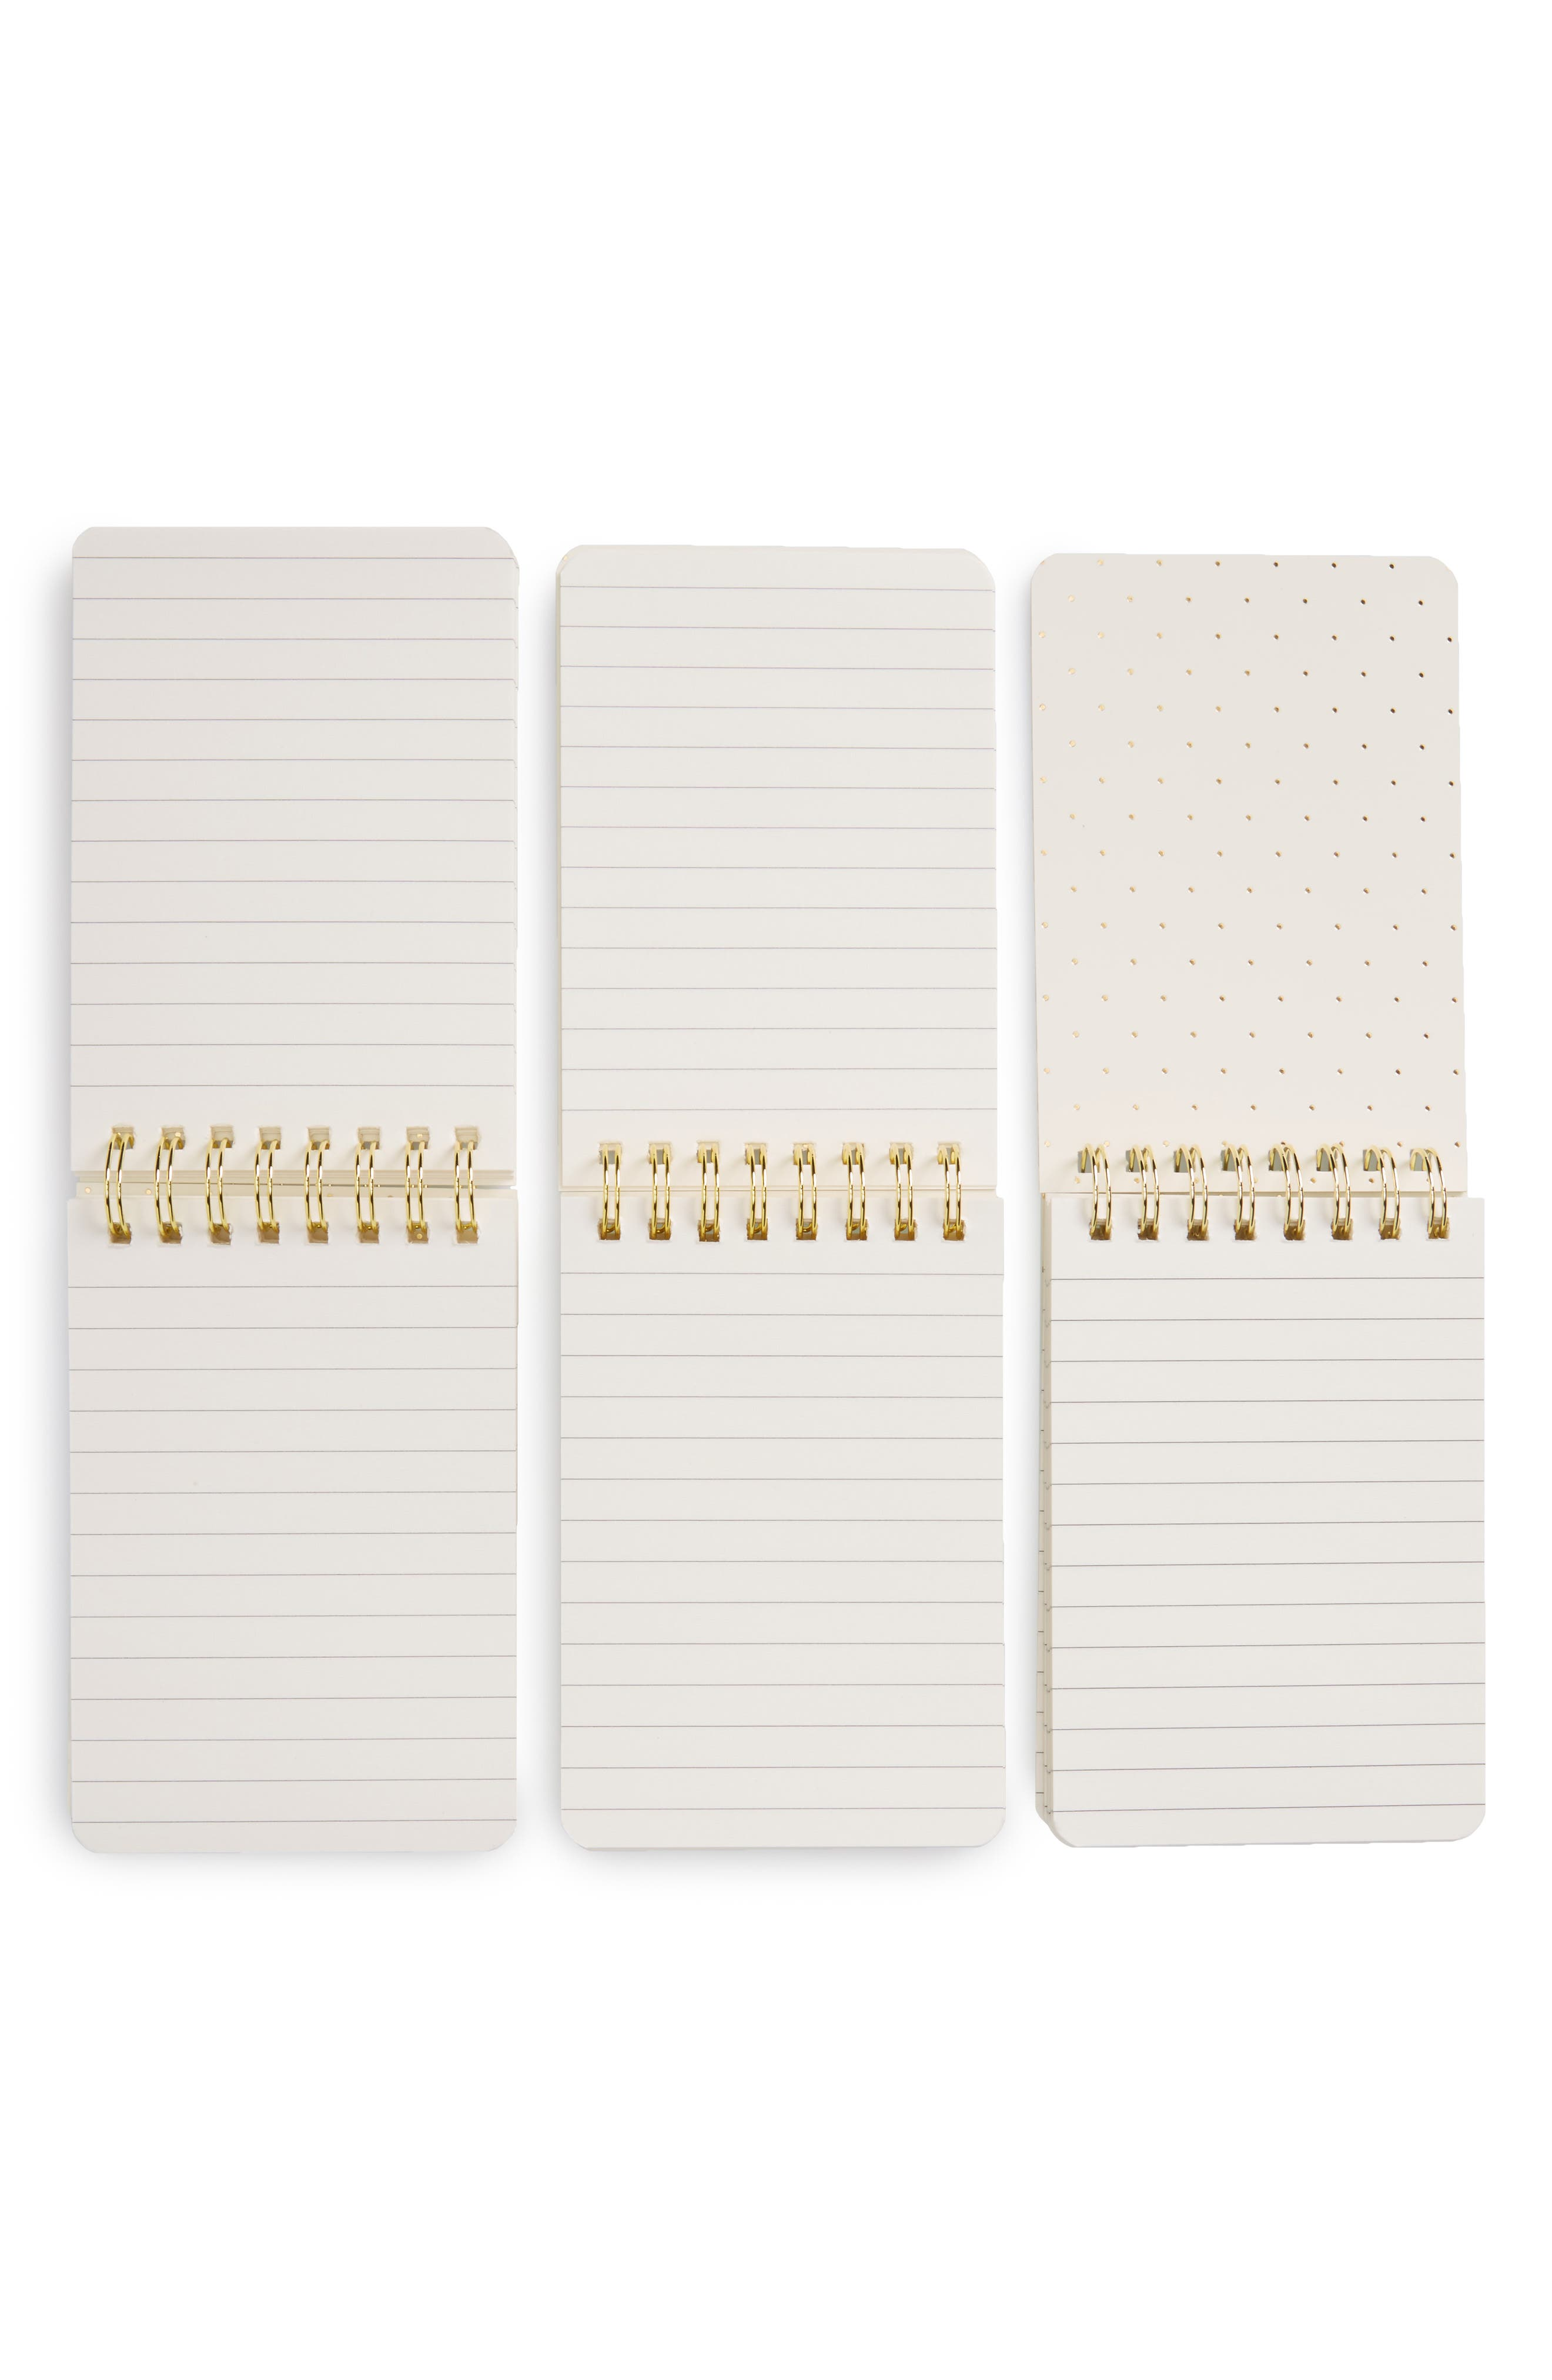 set of 3 mini spiral notepads,                             Alternate thumbnail 2, color,                             017